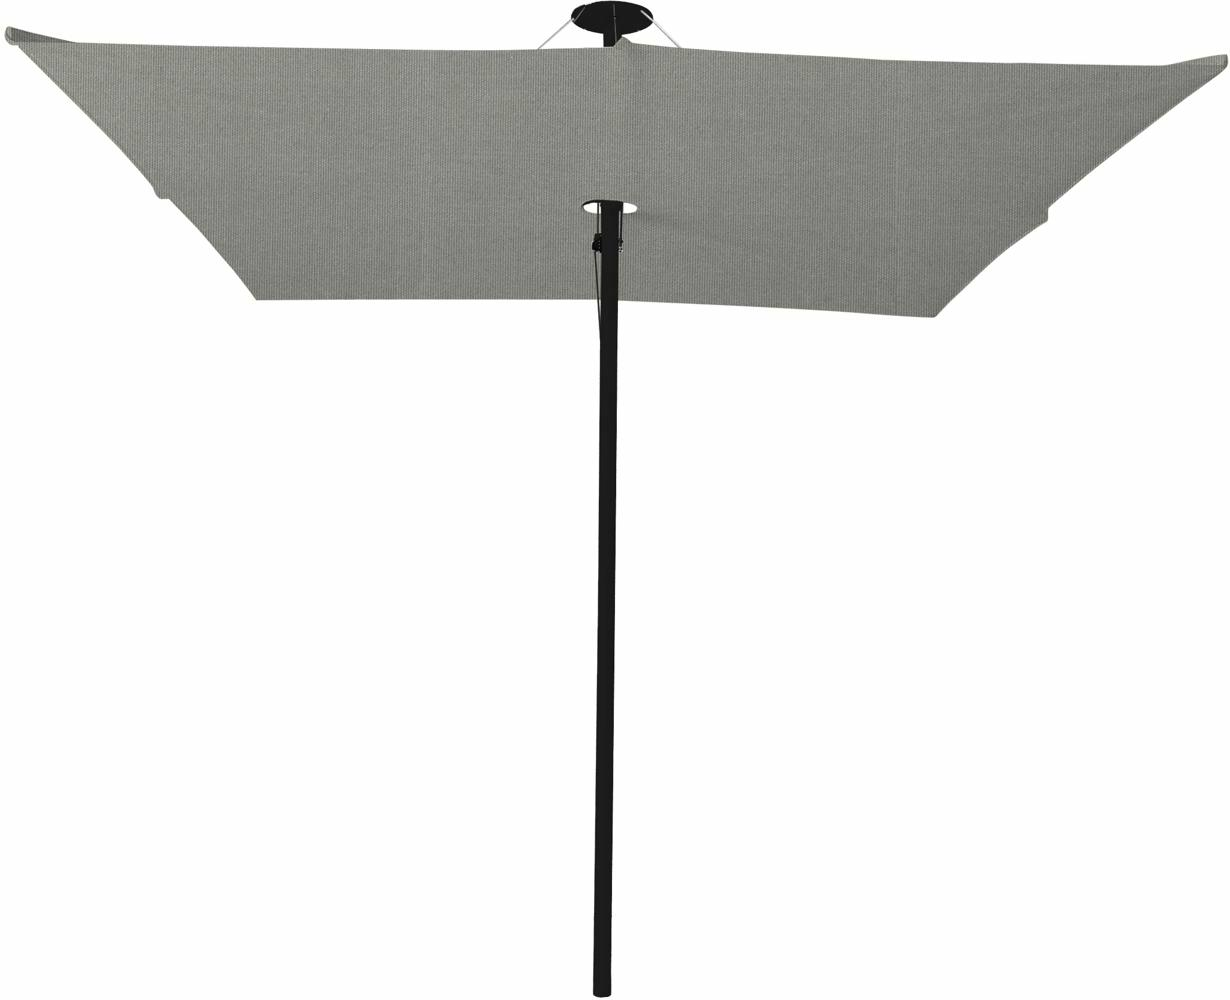 Infina center post umbrella, 3 m square, with frame in Dusk and Solidum Grey canopy.